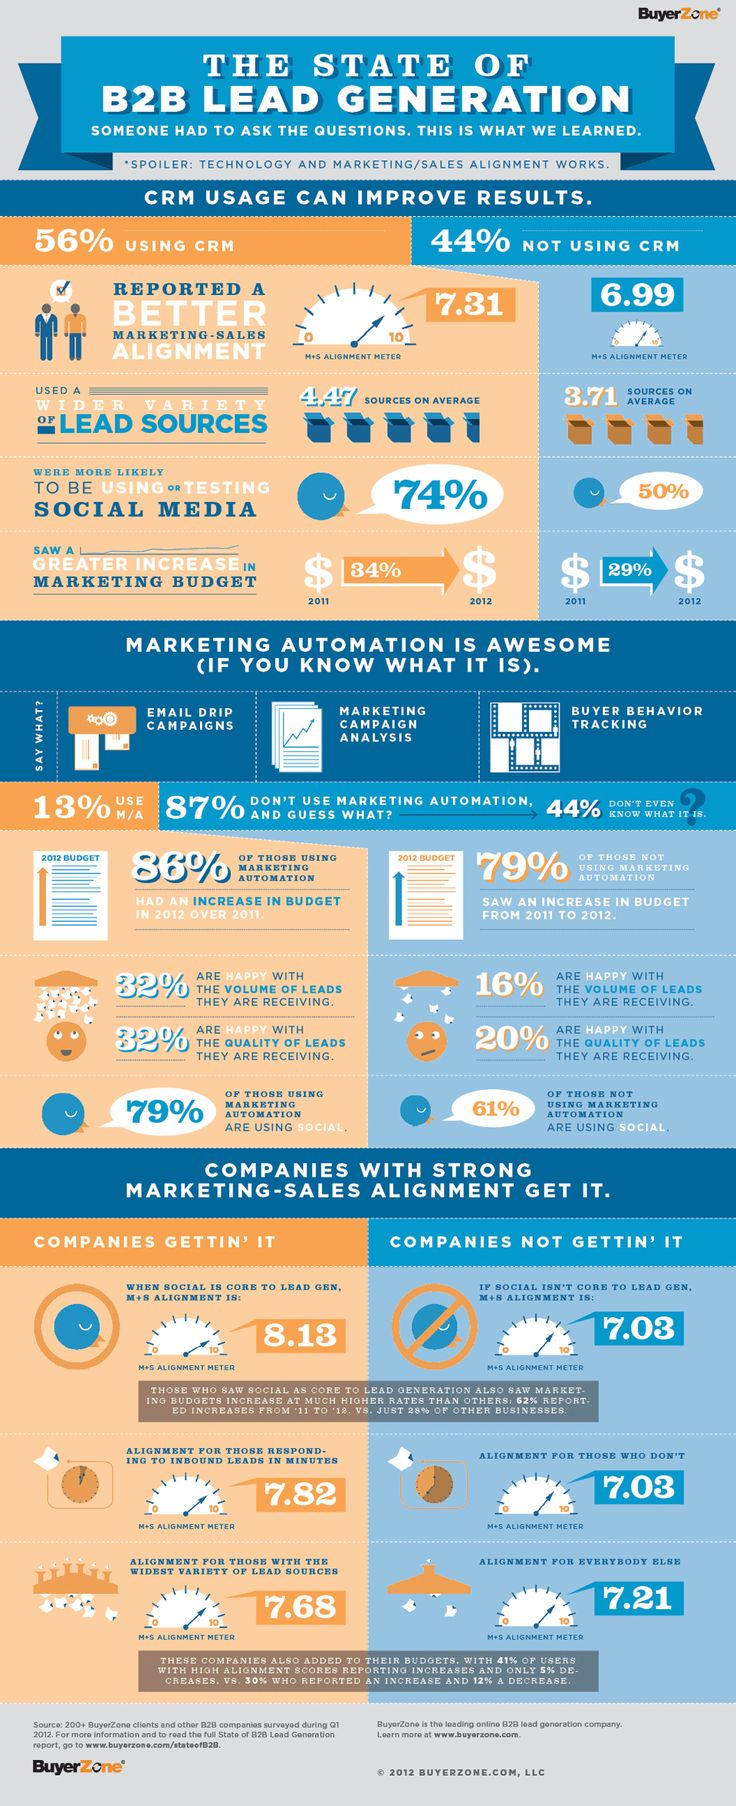 The State of B2B Lead Generation – a great infographic by BuyerZone!